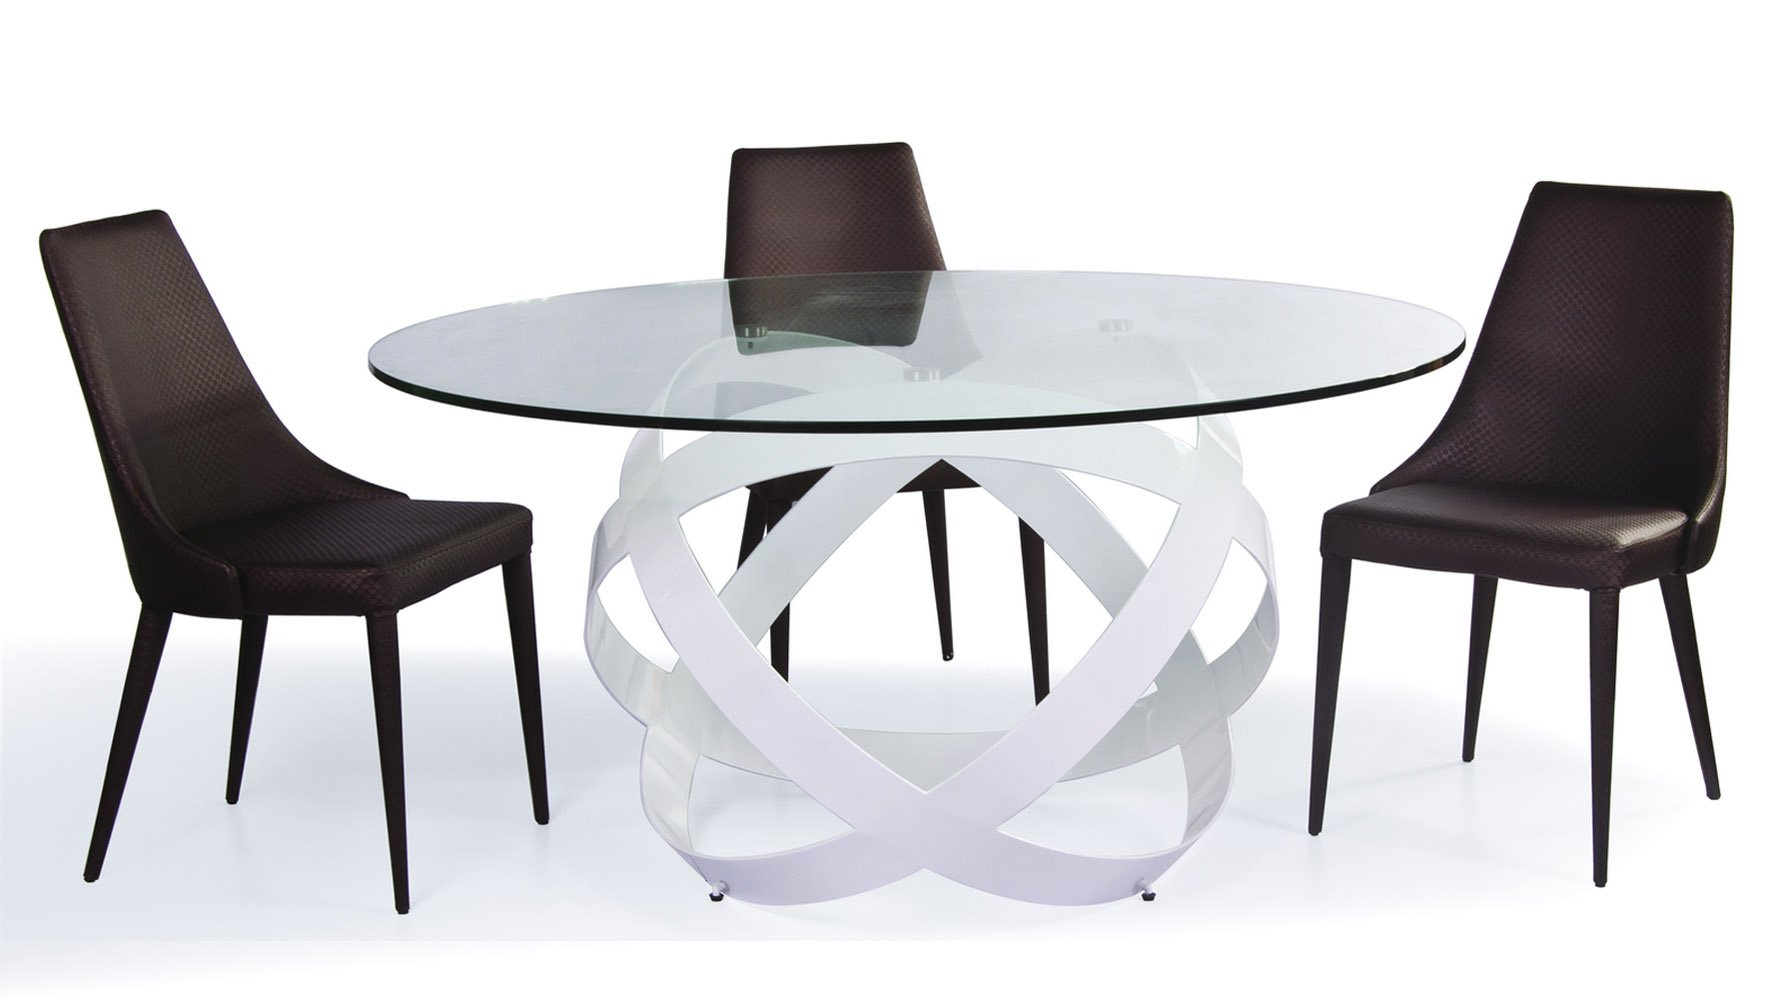 Mambo clear glass top dining table zuri furniture - Dining table images ...